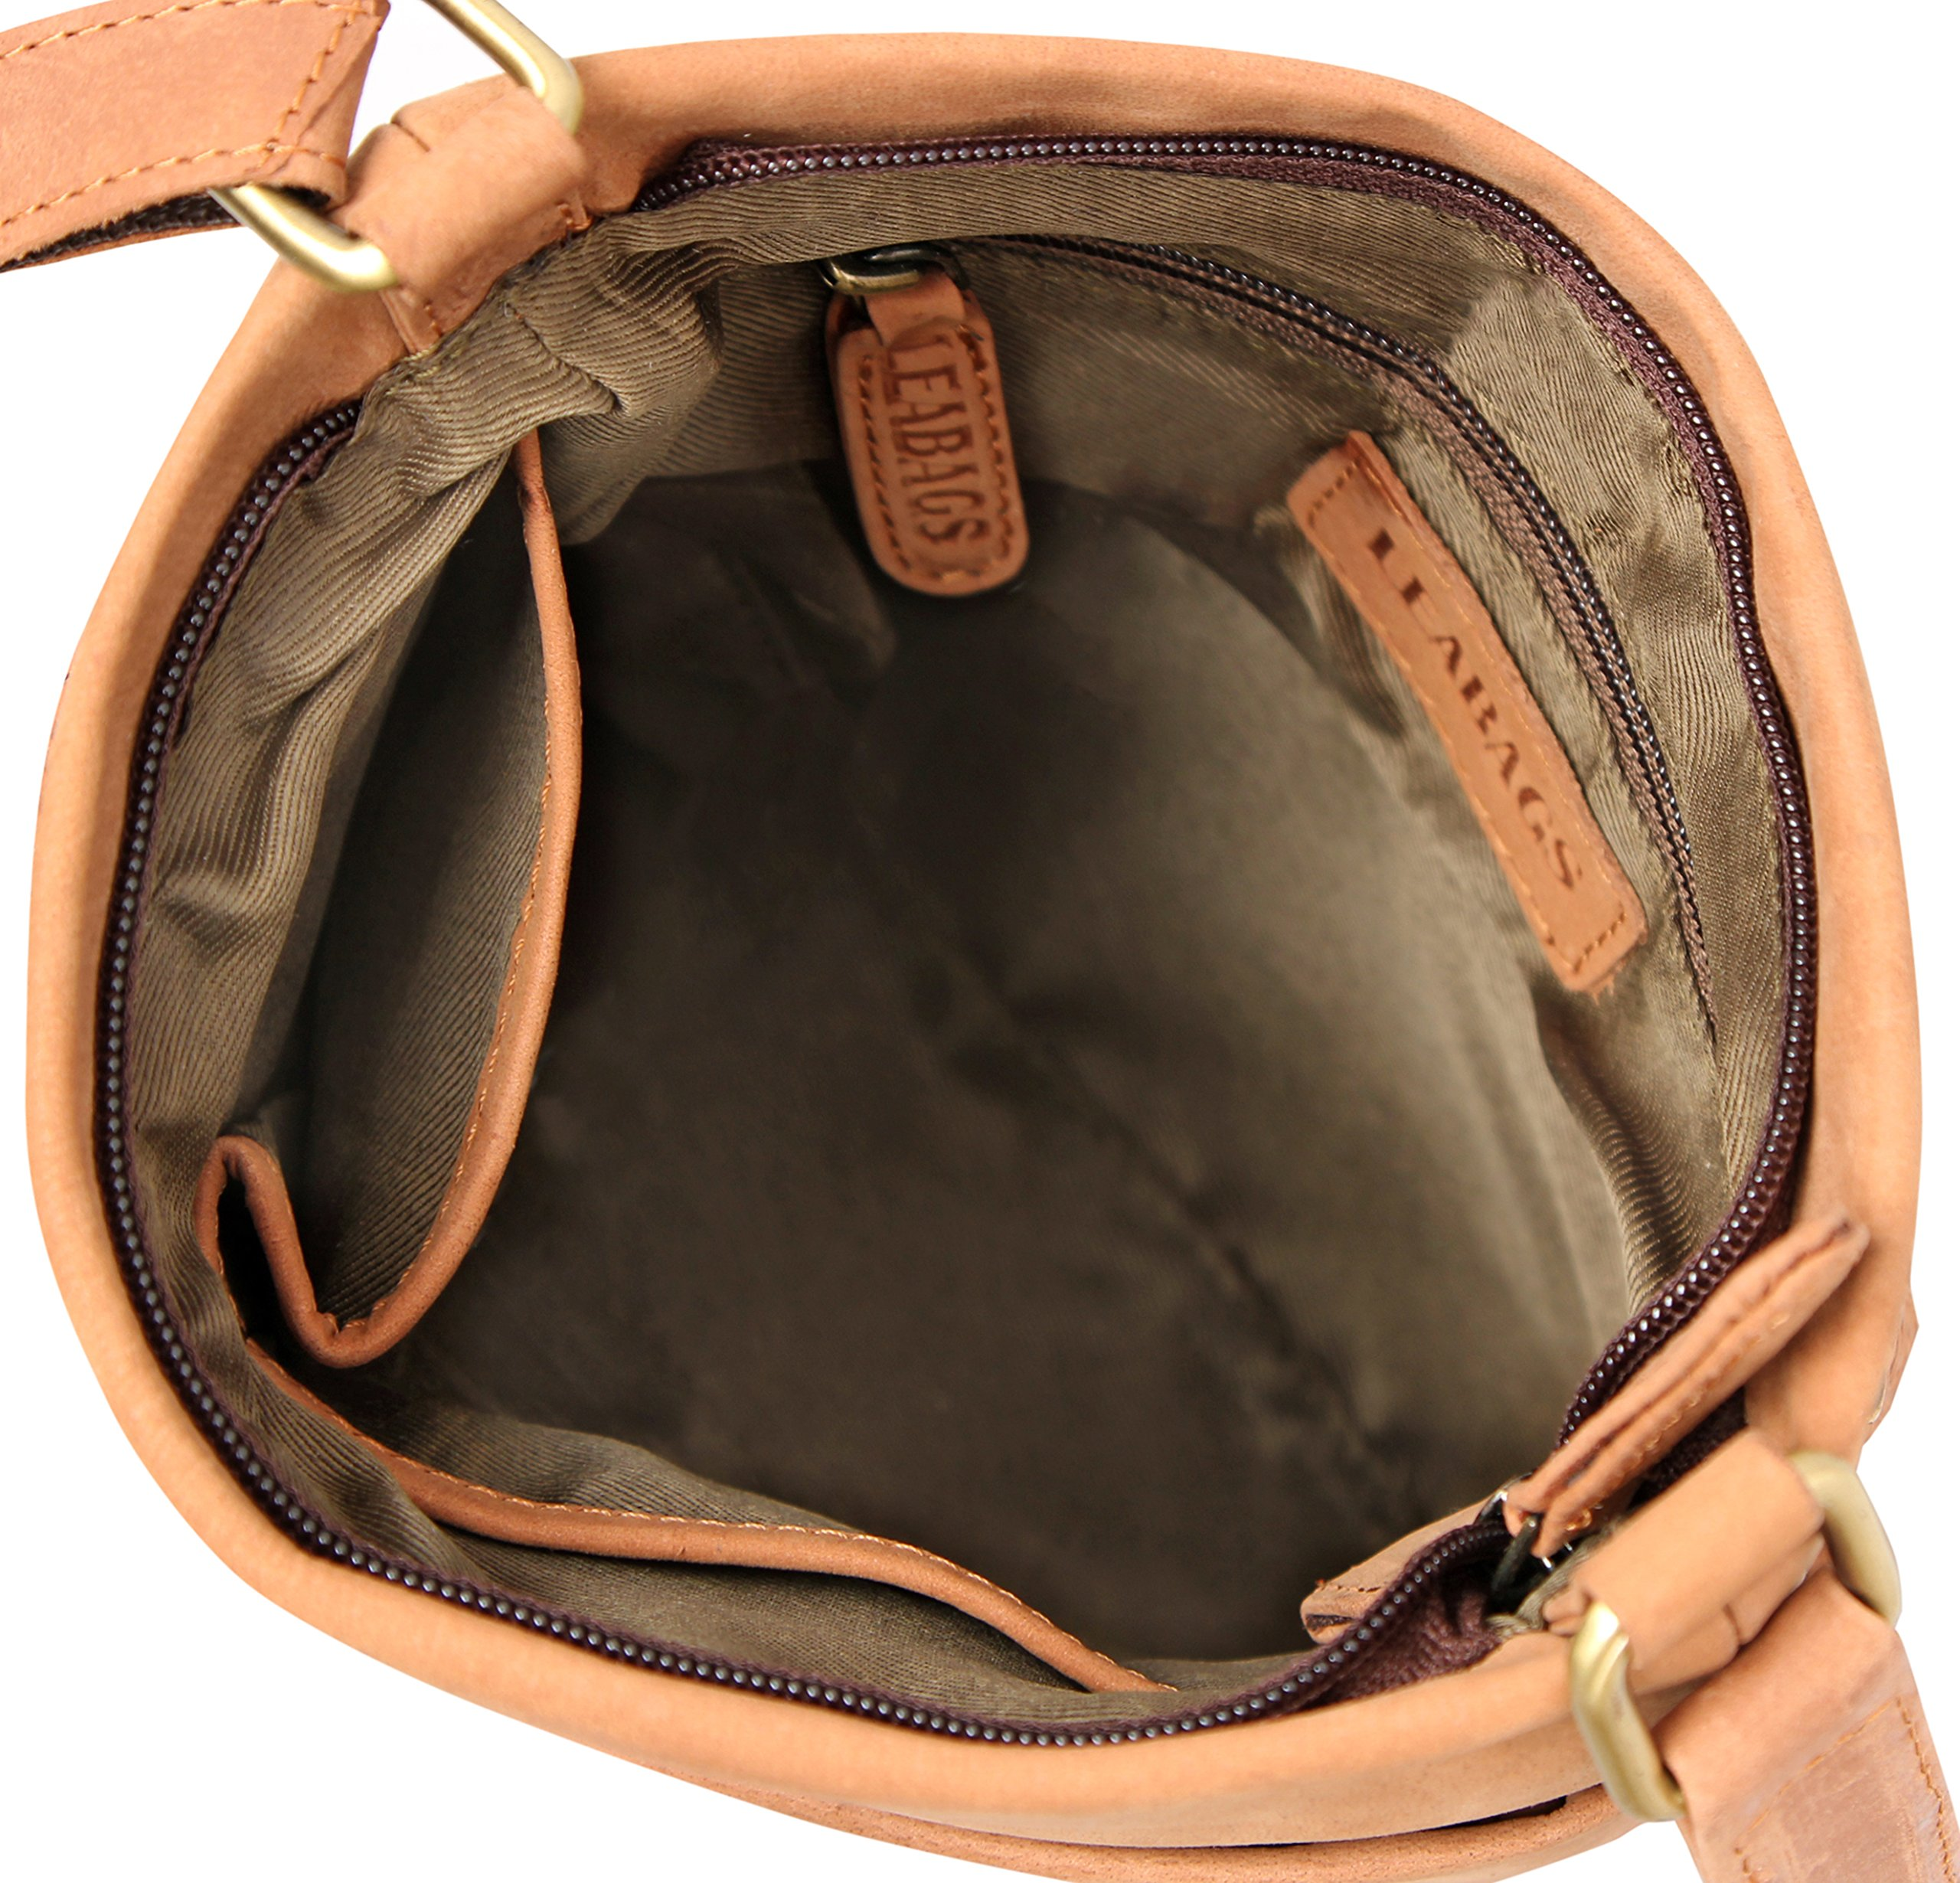 LEABAGS Seattle genuine buffalo leather crossbody bag in vintage style - Brown by LEABAGS (Image #9)